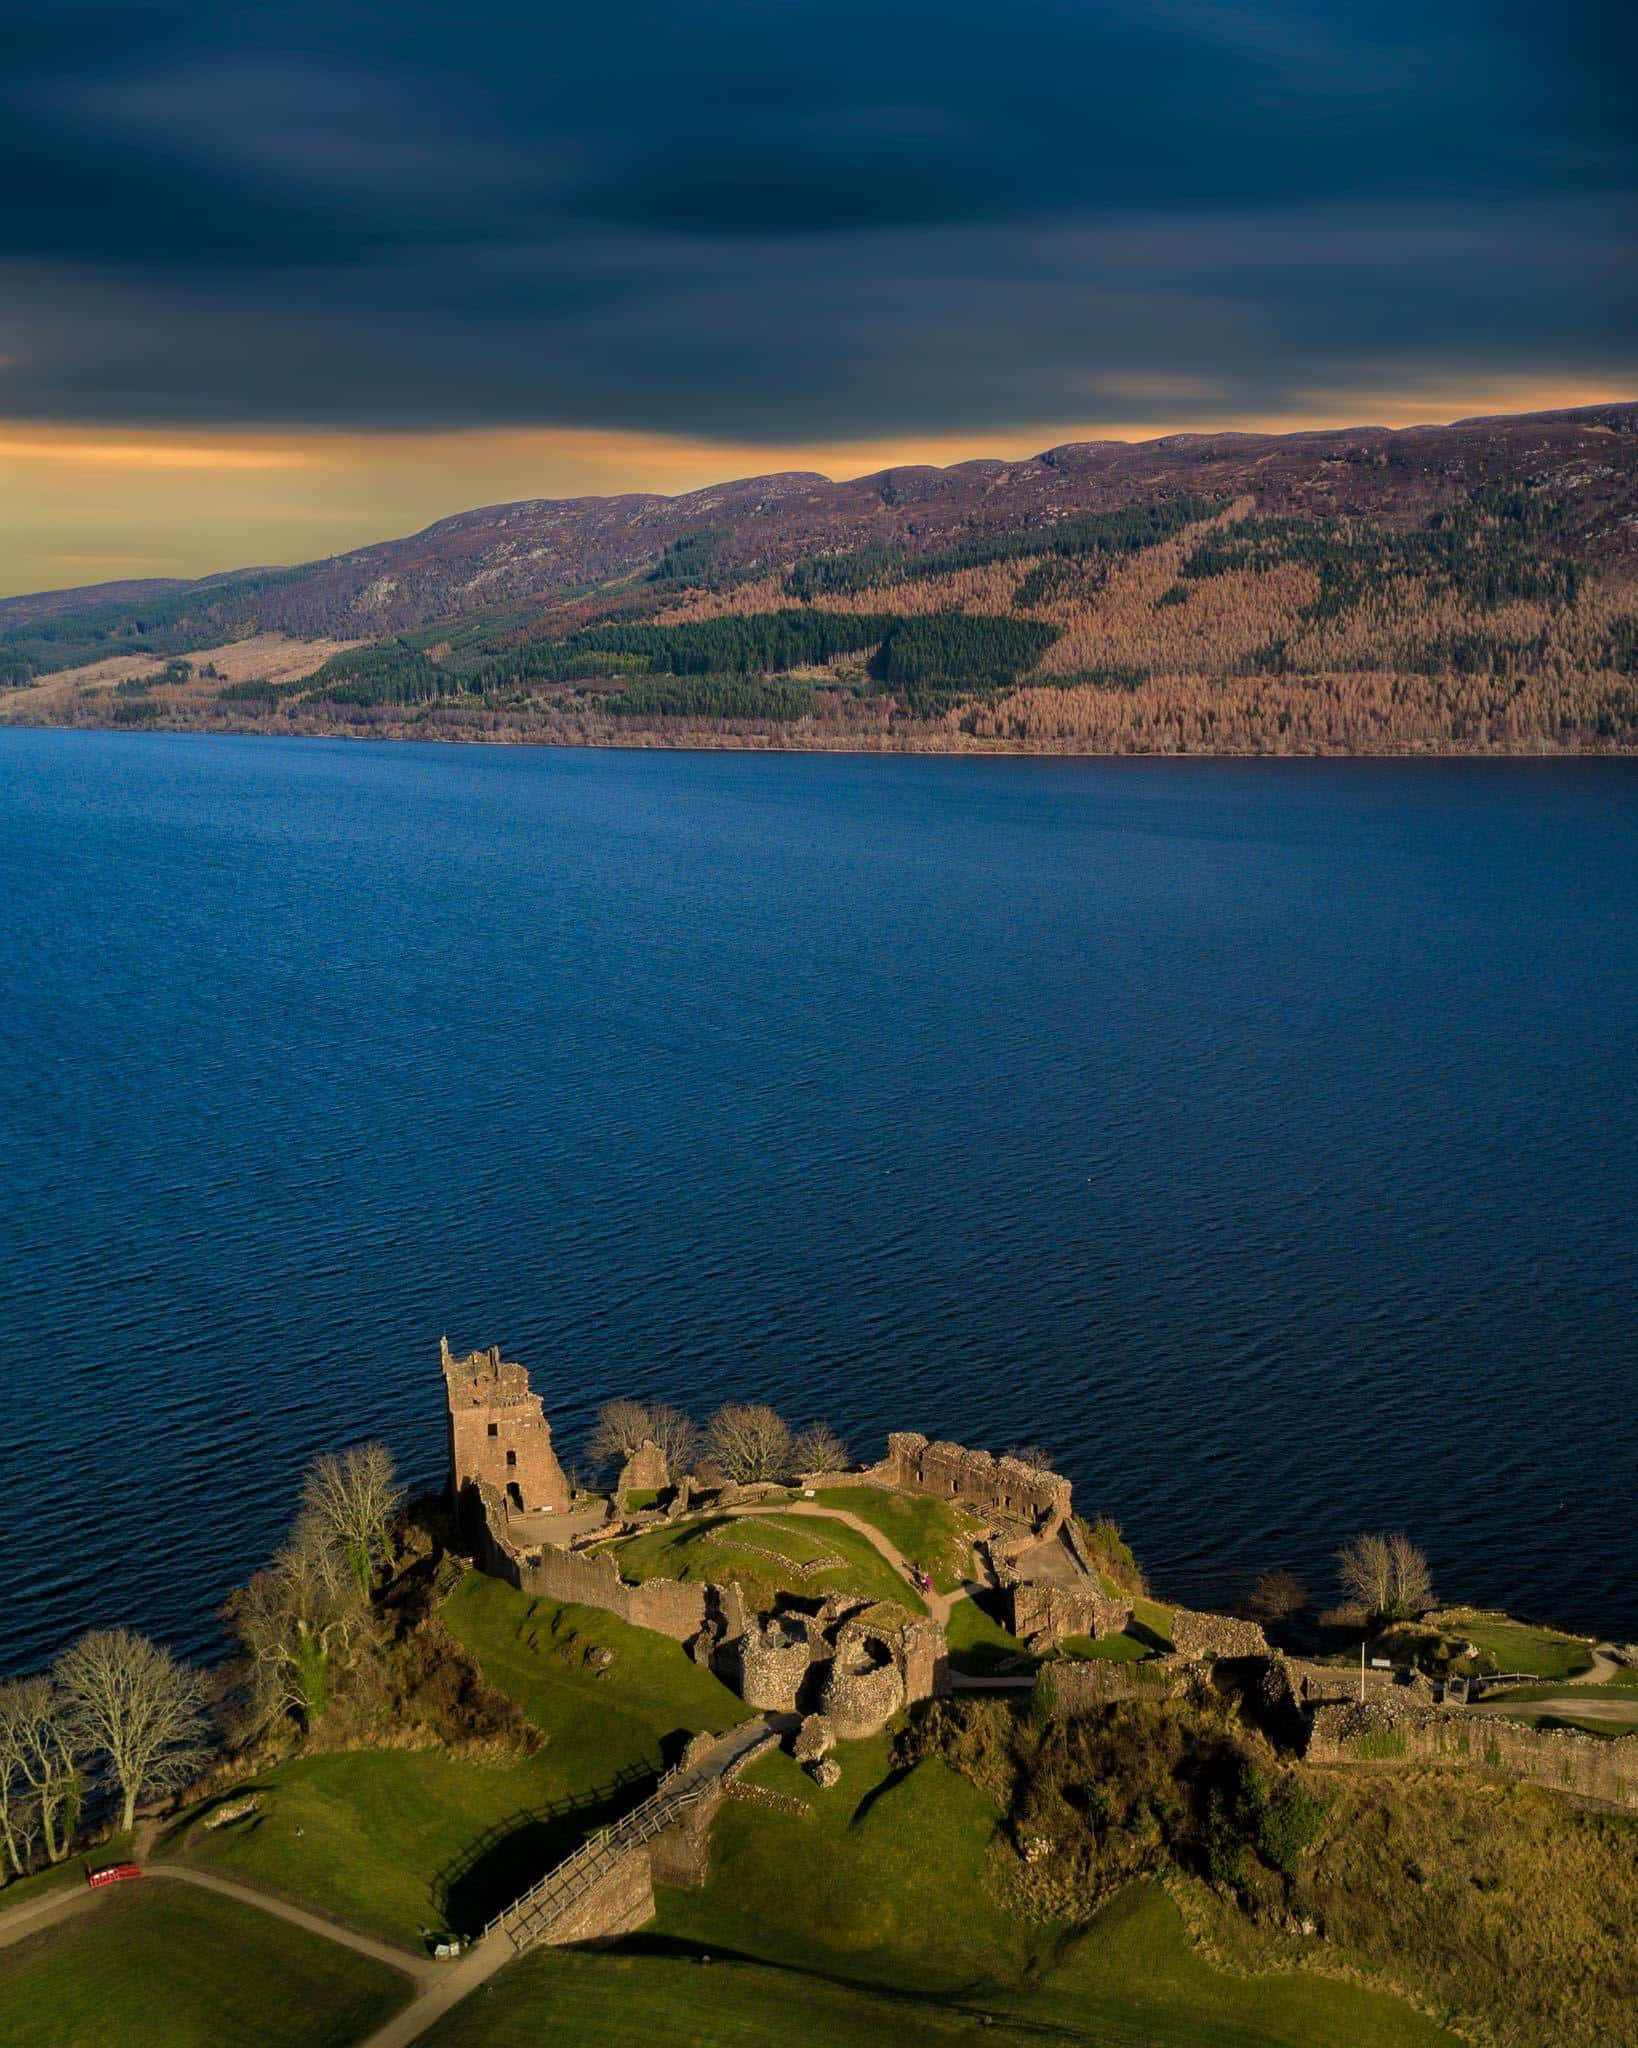 Things to do in Inverness: Check out Urqhart Castle on Loch Ness